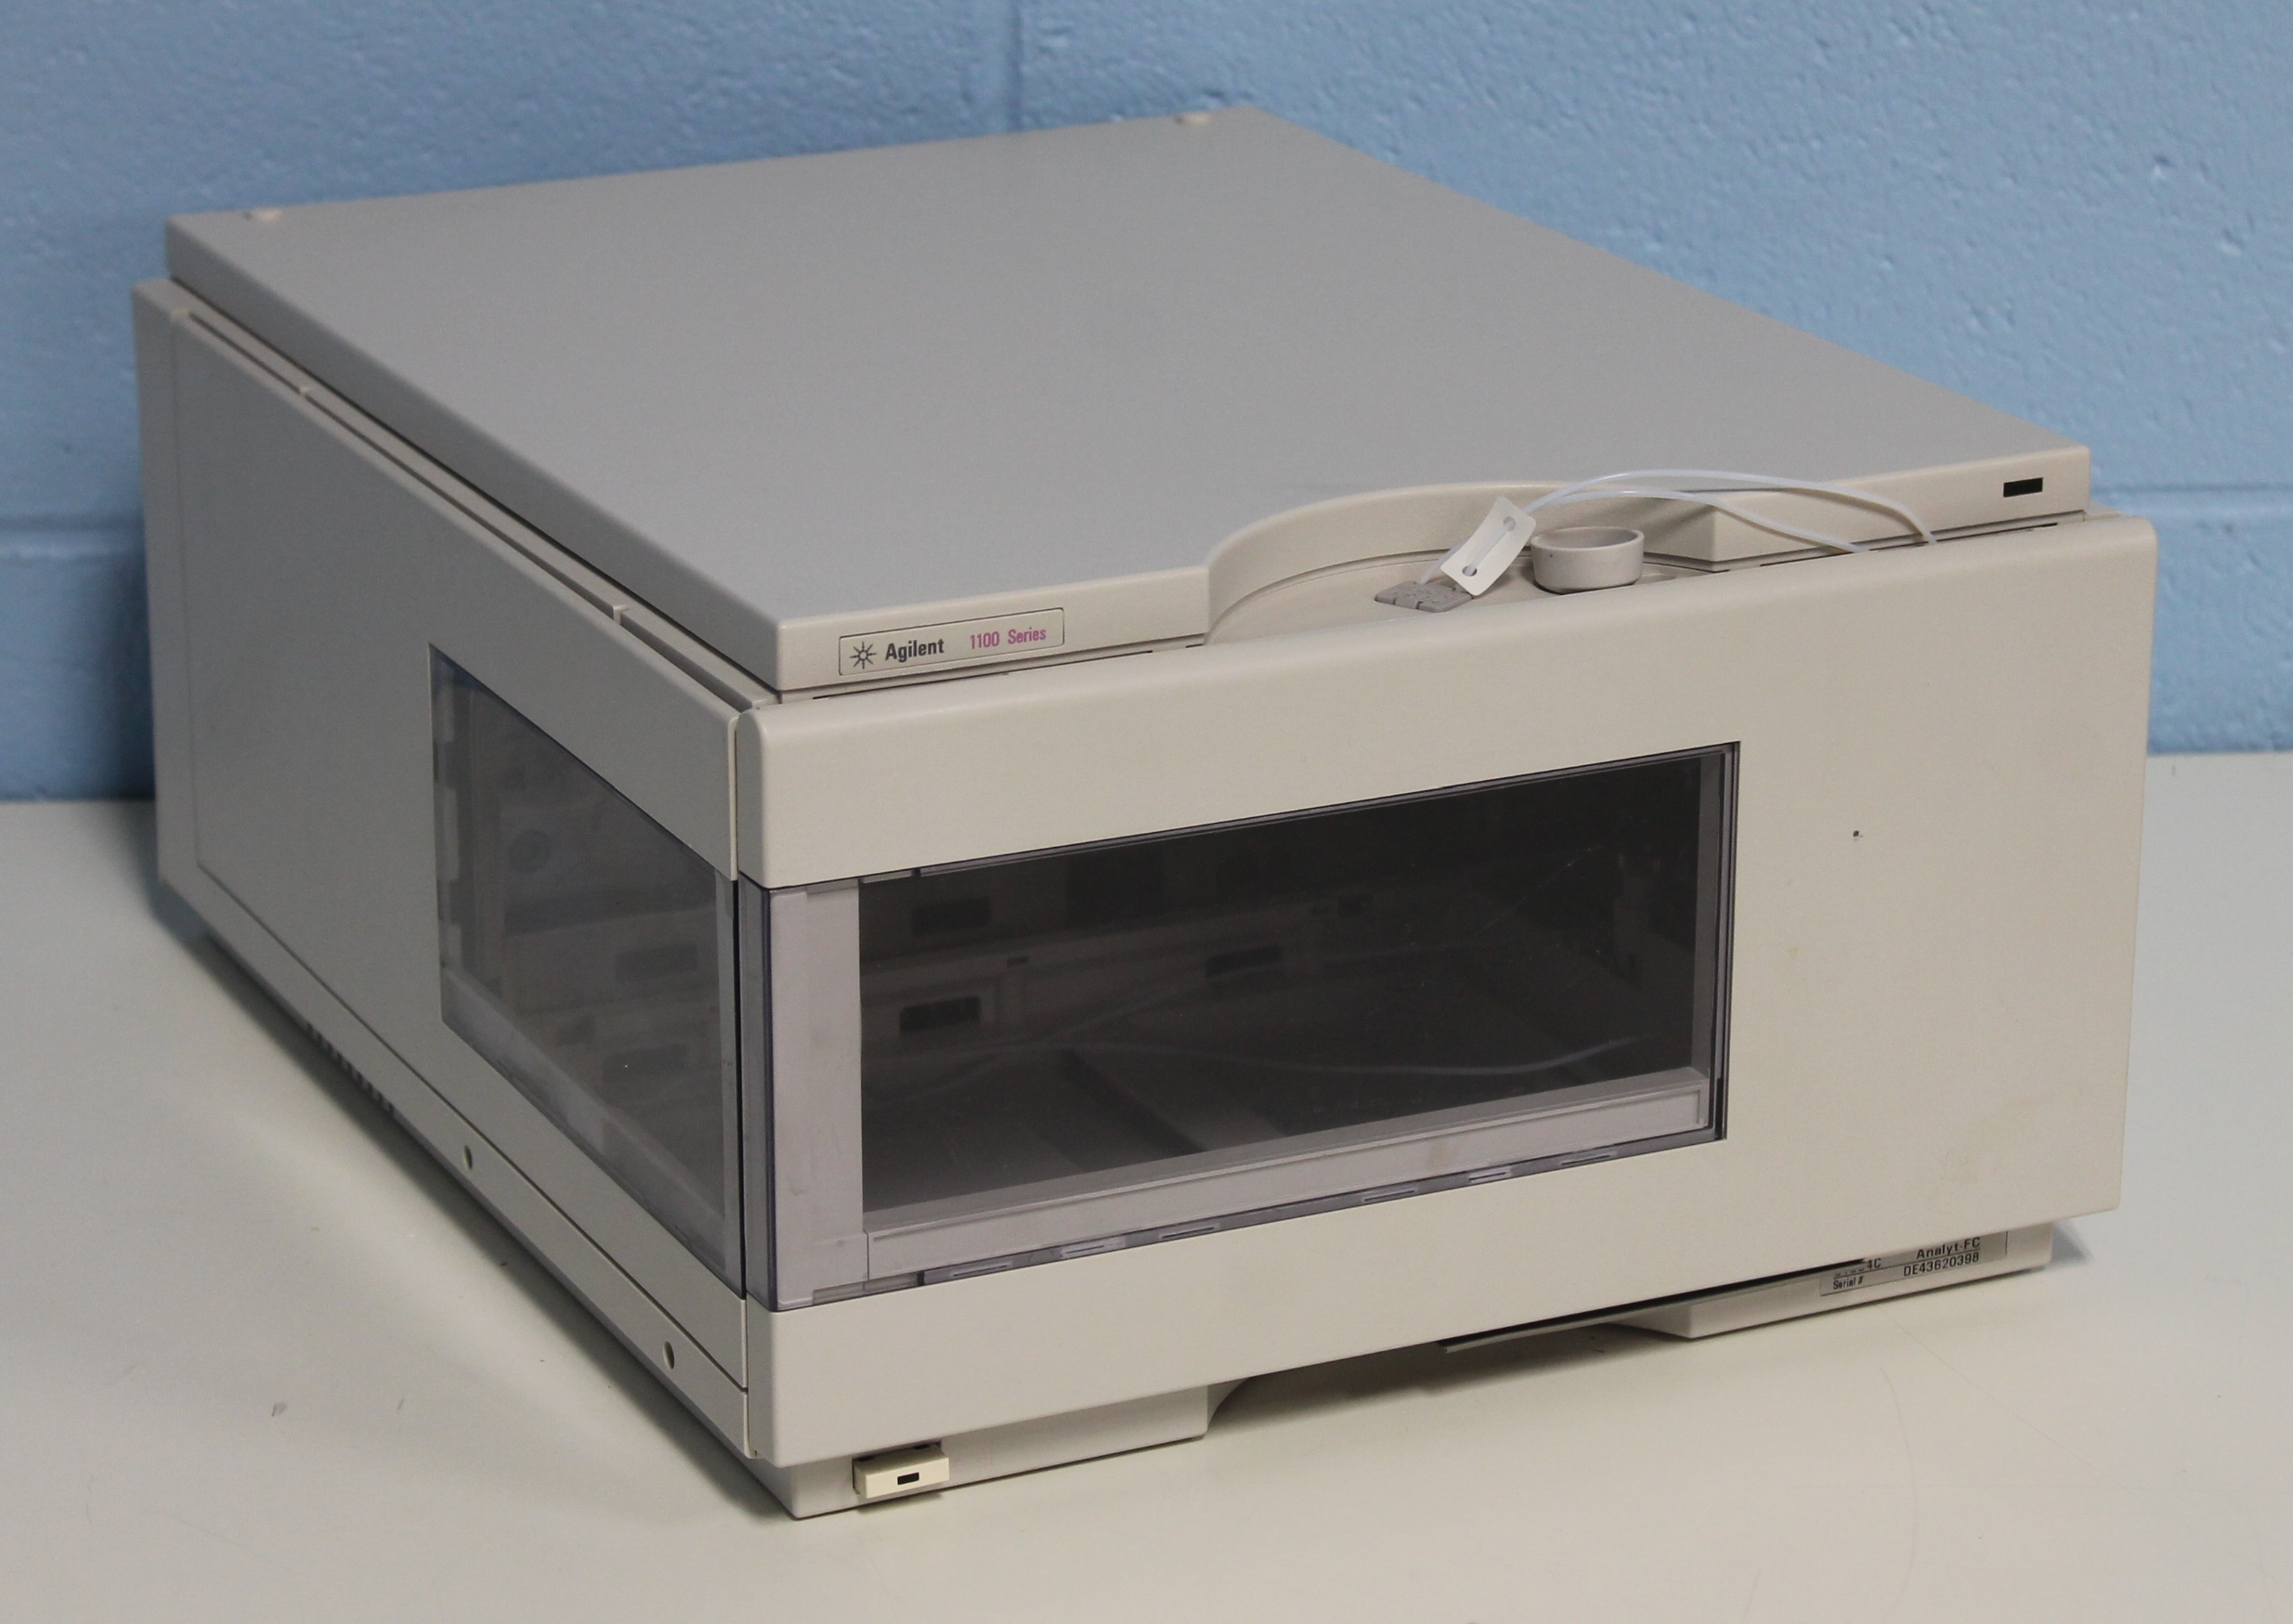 Refurbished Agilent Technologies 1100 Series G1364c